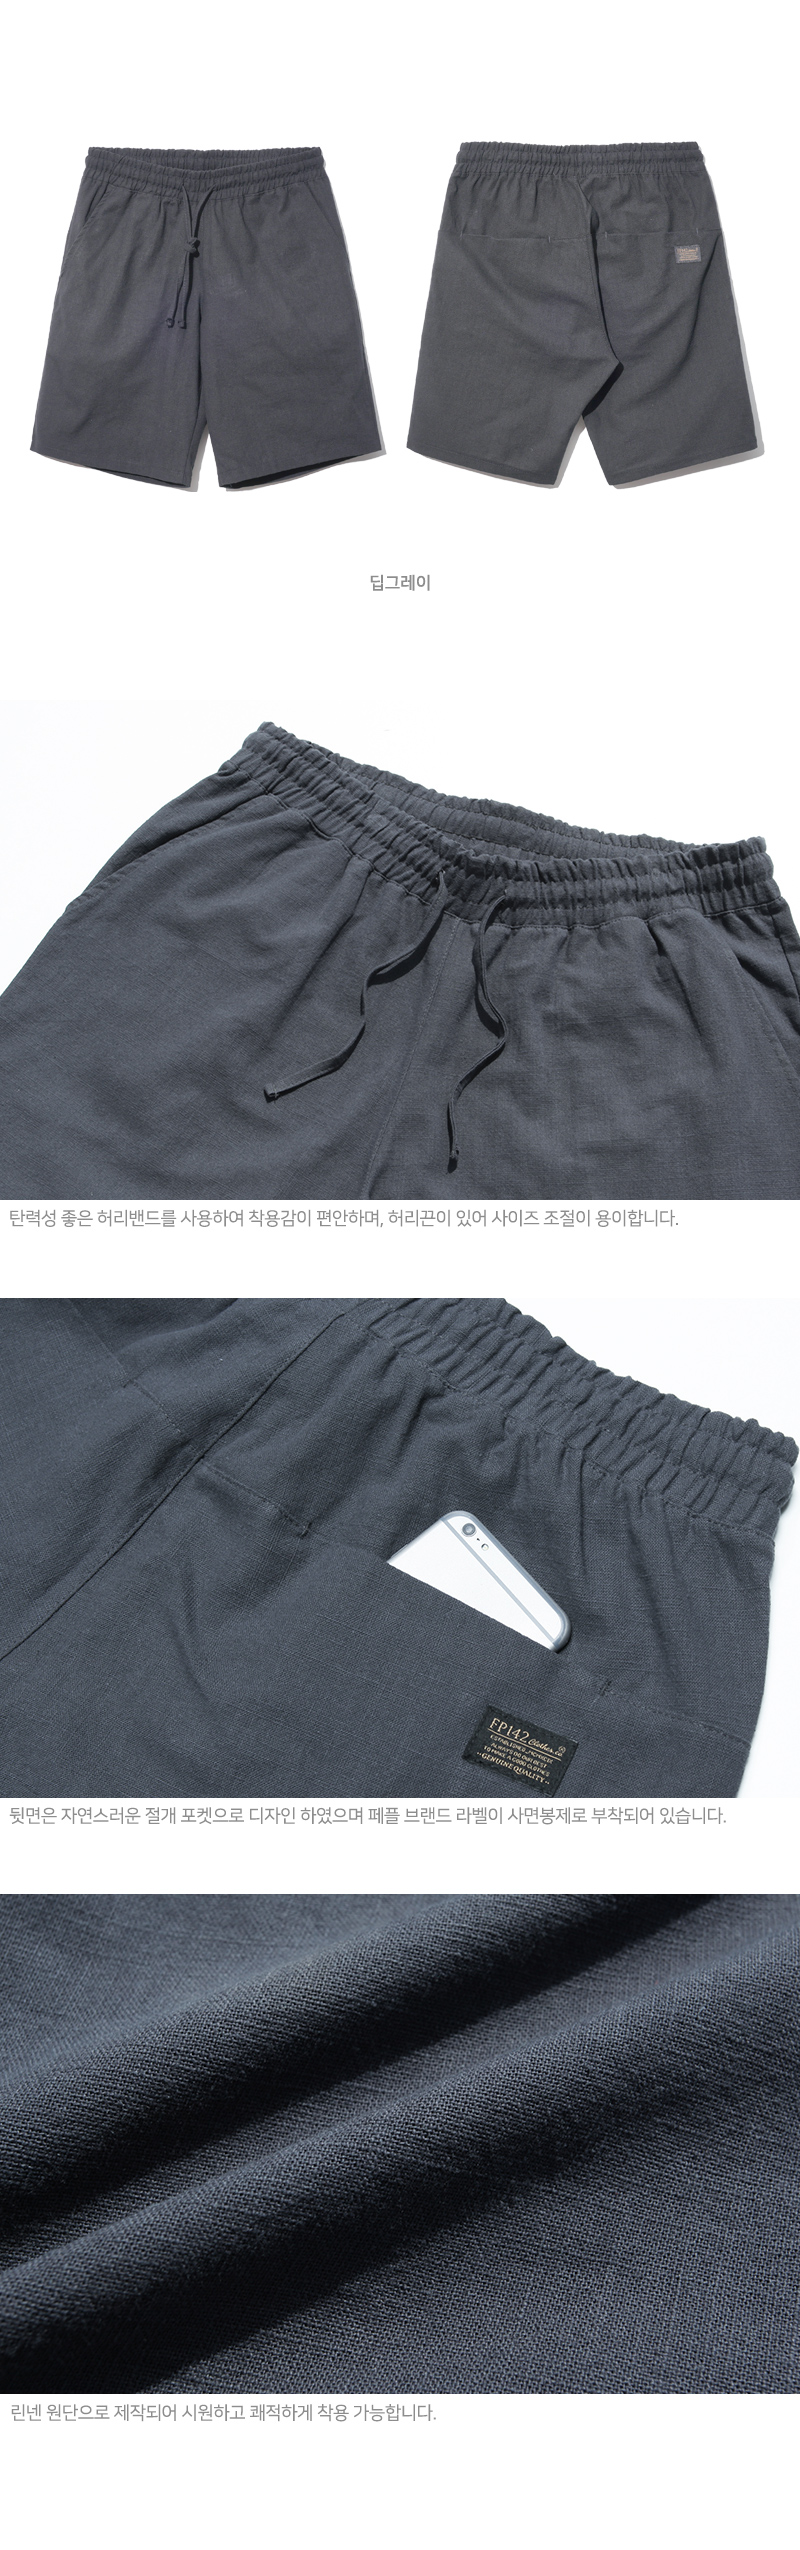 20190422_fp_realcooshortpants_detail_deepgray.jpg